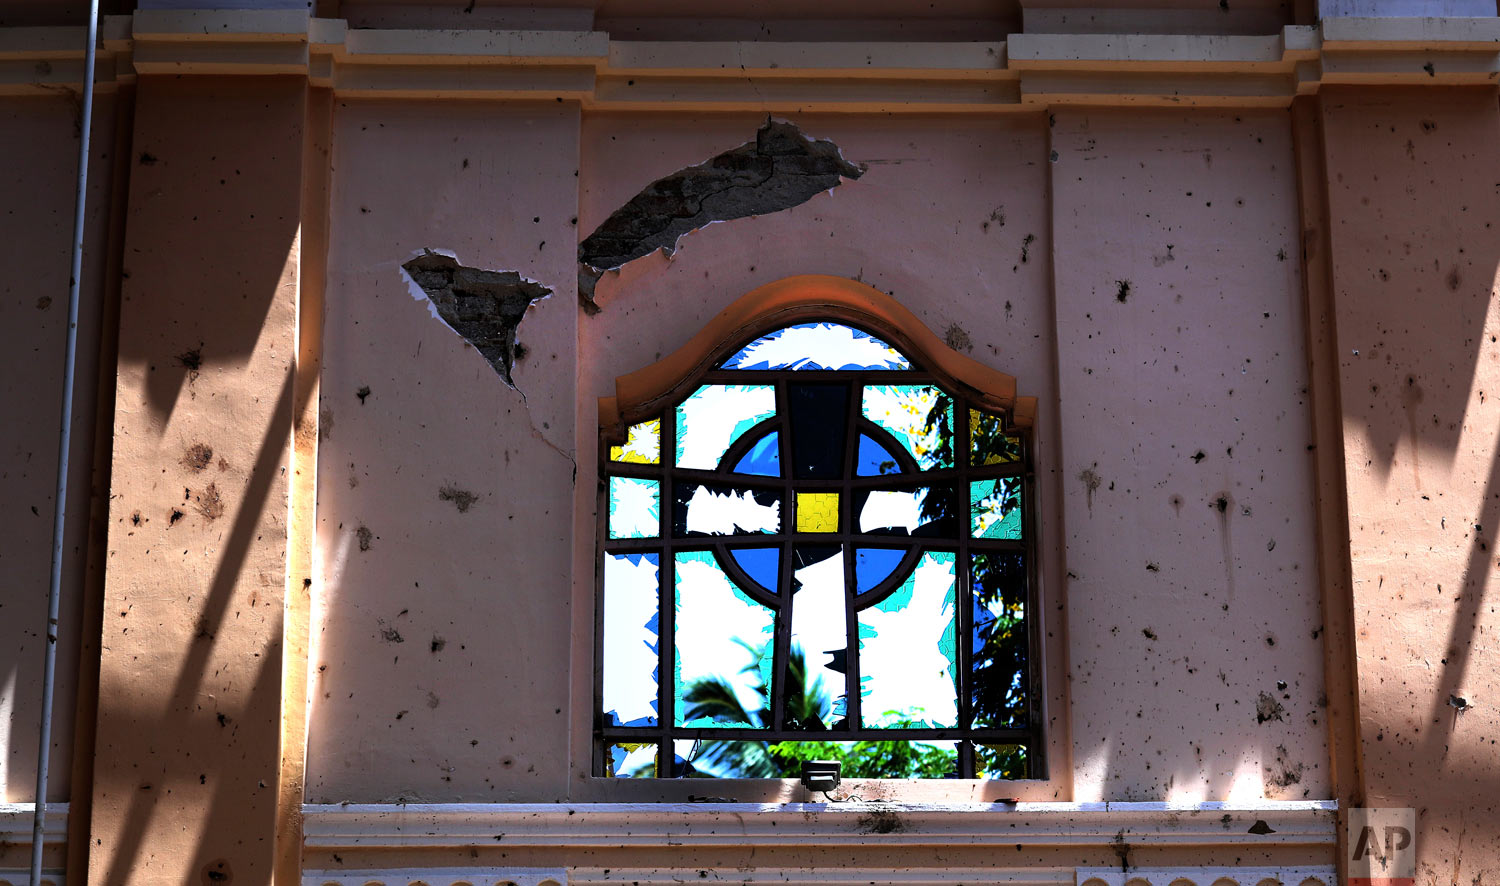 A stained-glass window stands broken at Sebastian's Church, in Negombo, Sri Lanka, April 25, 2019. (AP Photo/Manish Swarup)